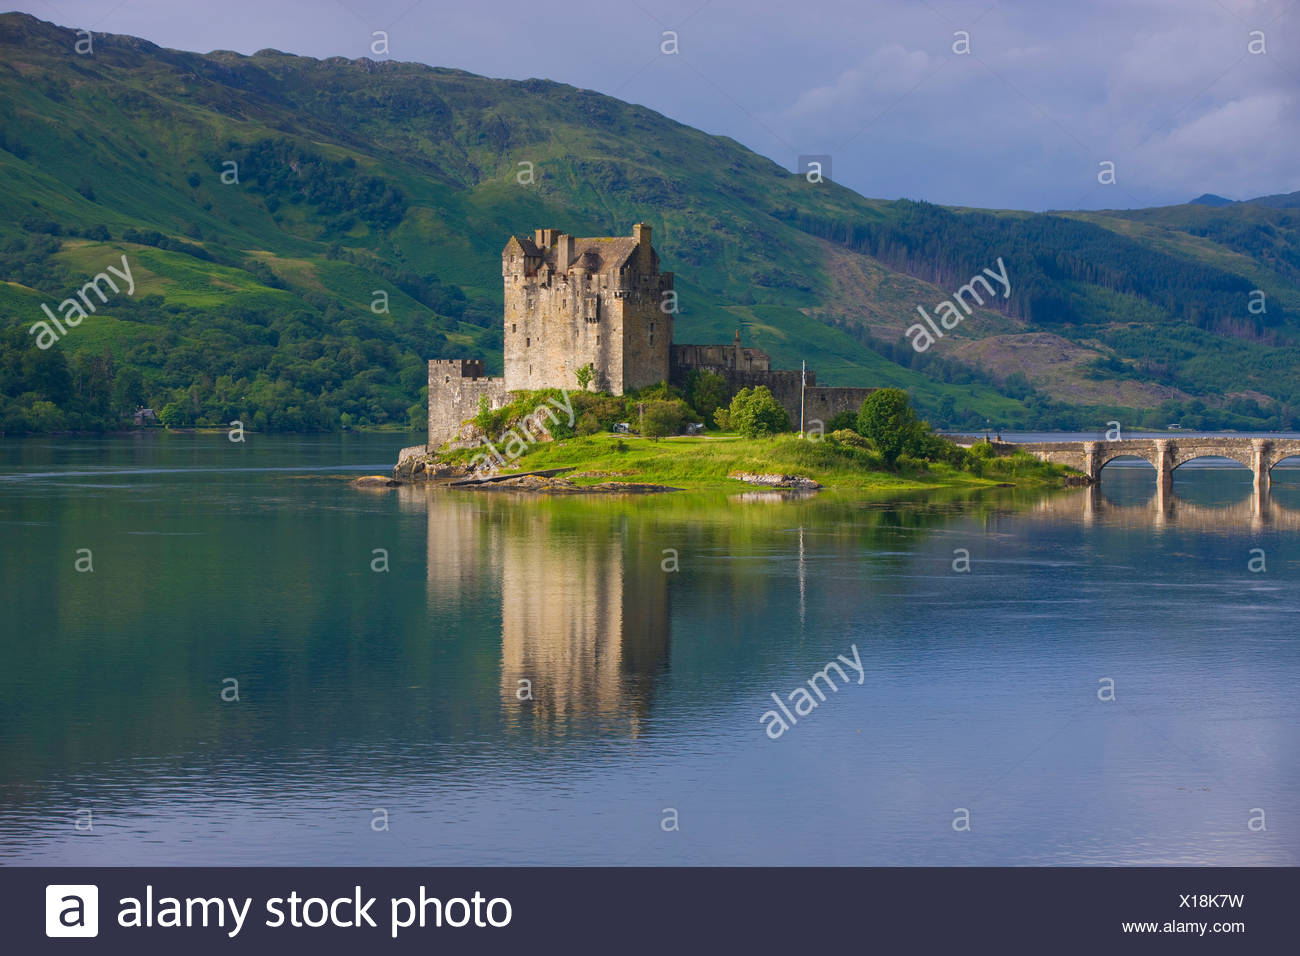 Eilean Donan Castle, Great Britain, Scotland, Europe, sea, coast, tides, flood, island, isle, castle, bridge, reflection - Stock Image